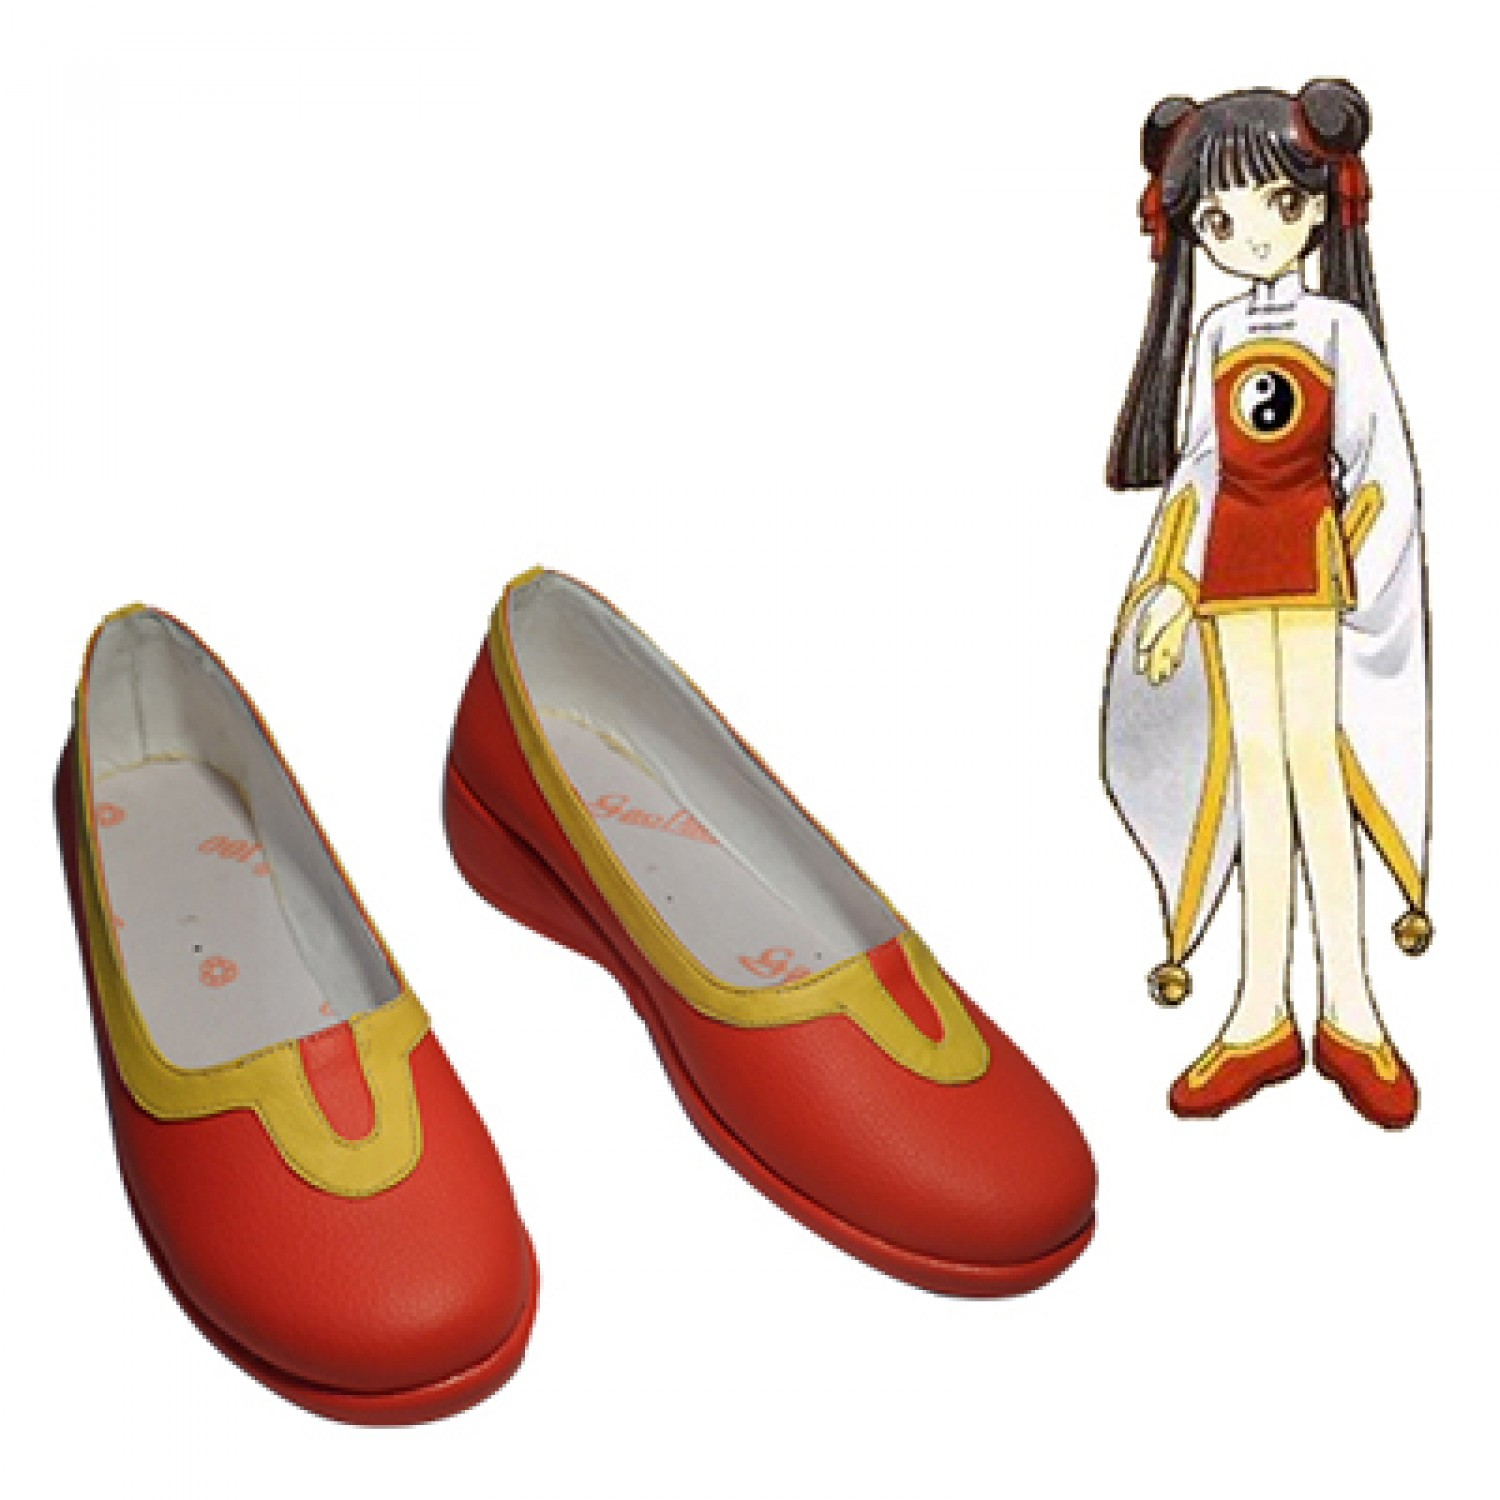 Cardcaptor Sakura RI MEIRIN PU Leather Cosplay Shoes